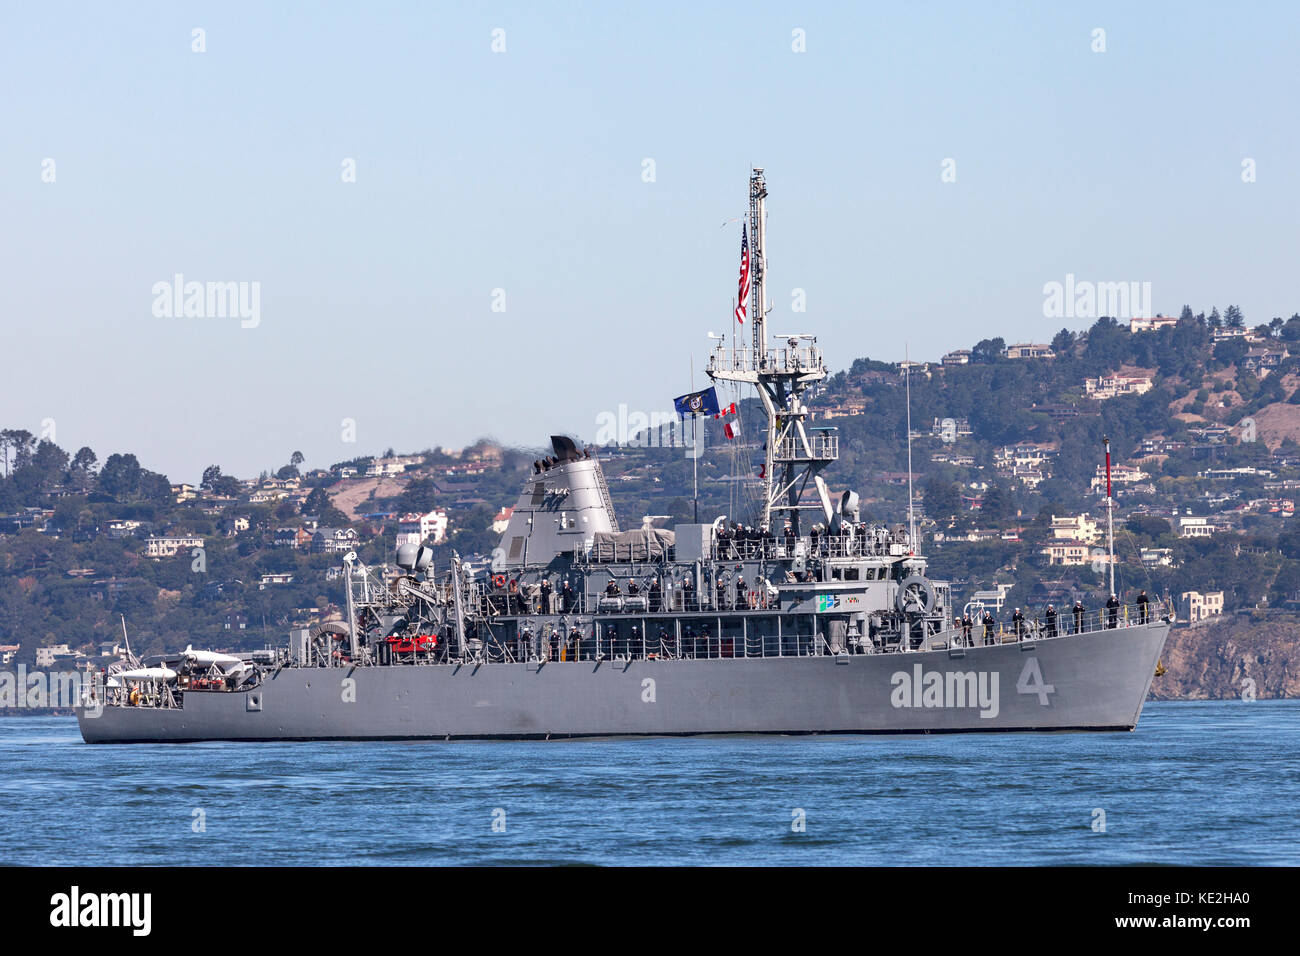 Avenger-class mine countermeasures ship USS Champion (MCM 4) on the water of San Francisco Bay. Stock Photo